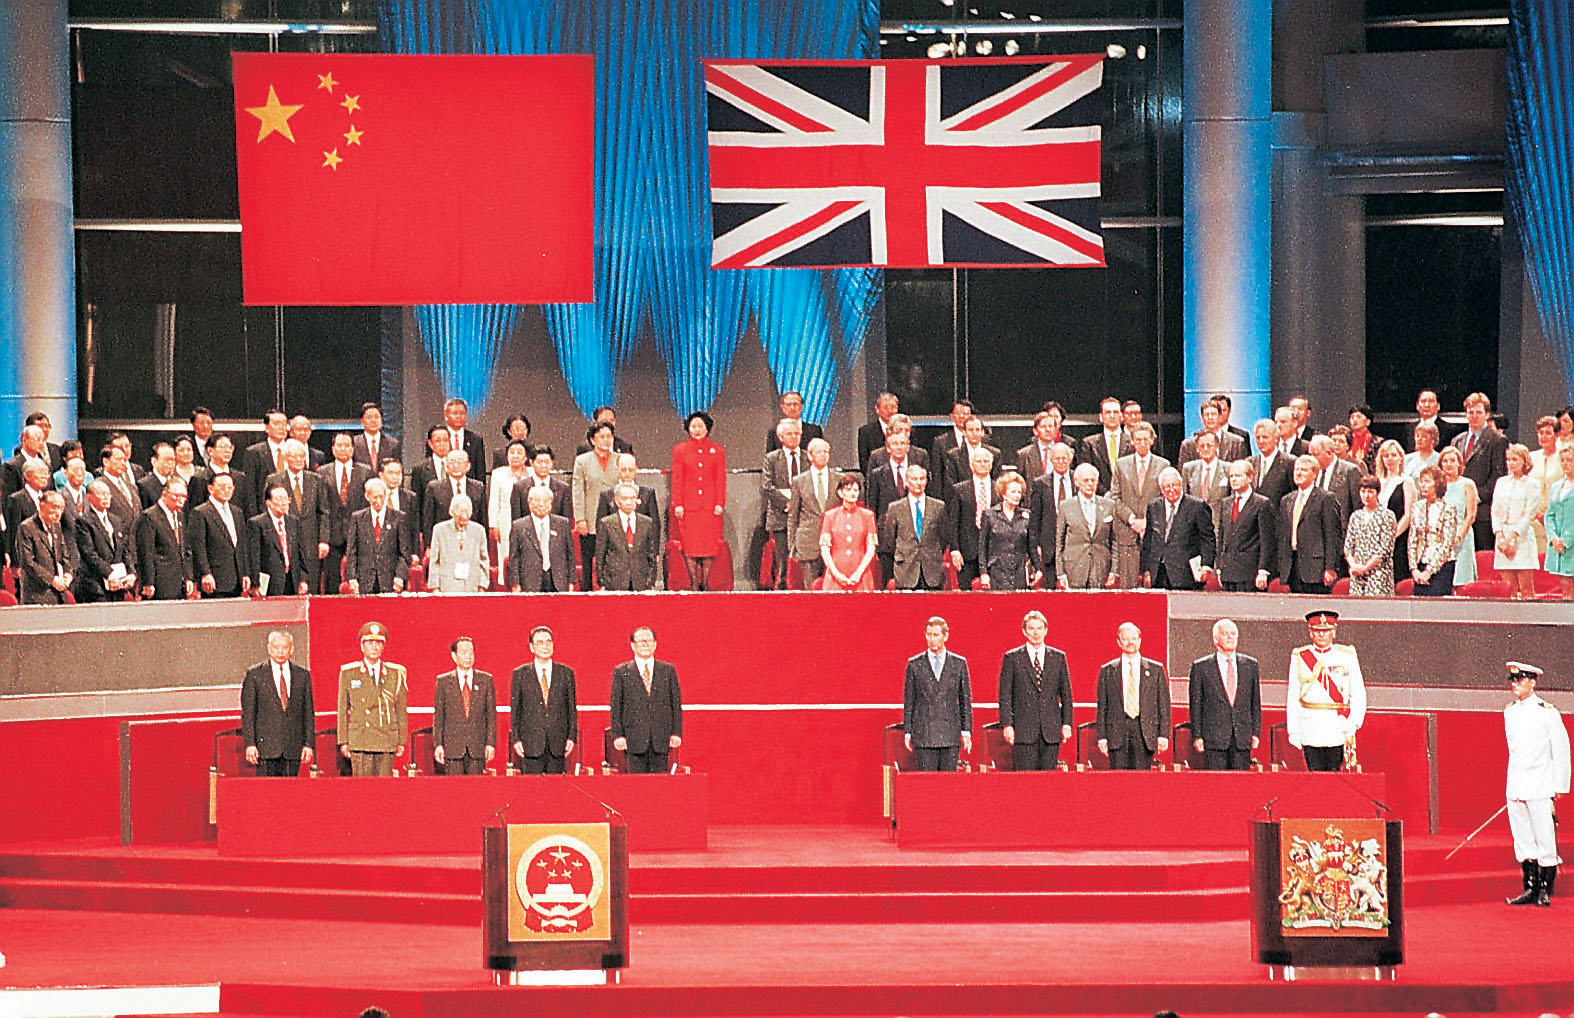 The Day The Union Jack Was Lowered: Remembering the Hong Kong ...